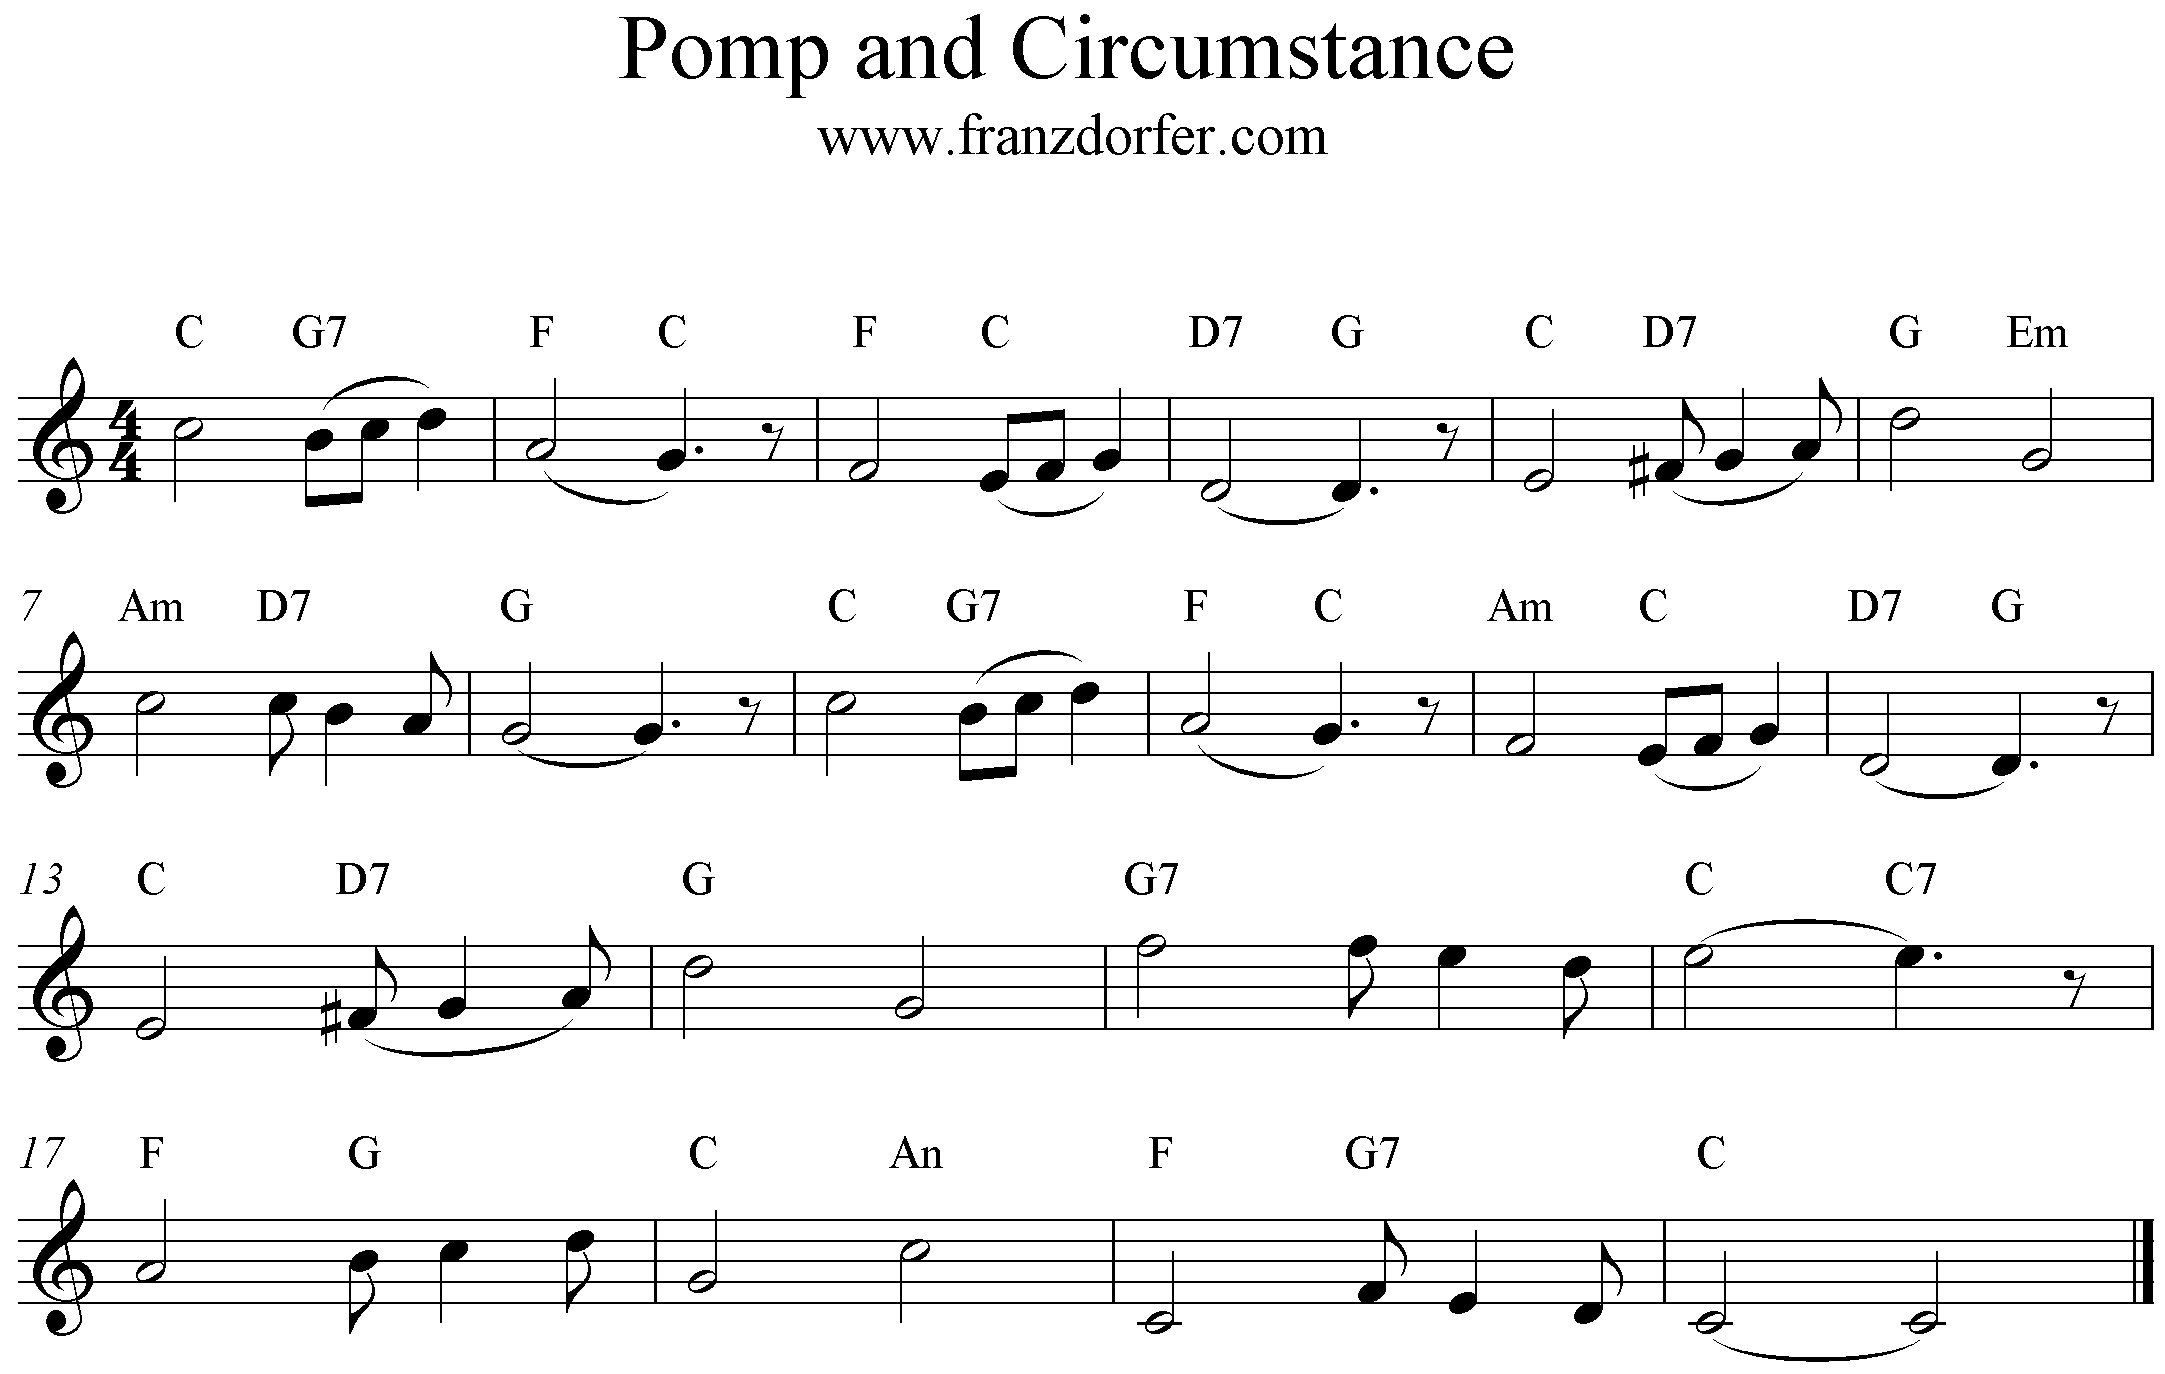 Noten Pomp and Circumstance